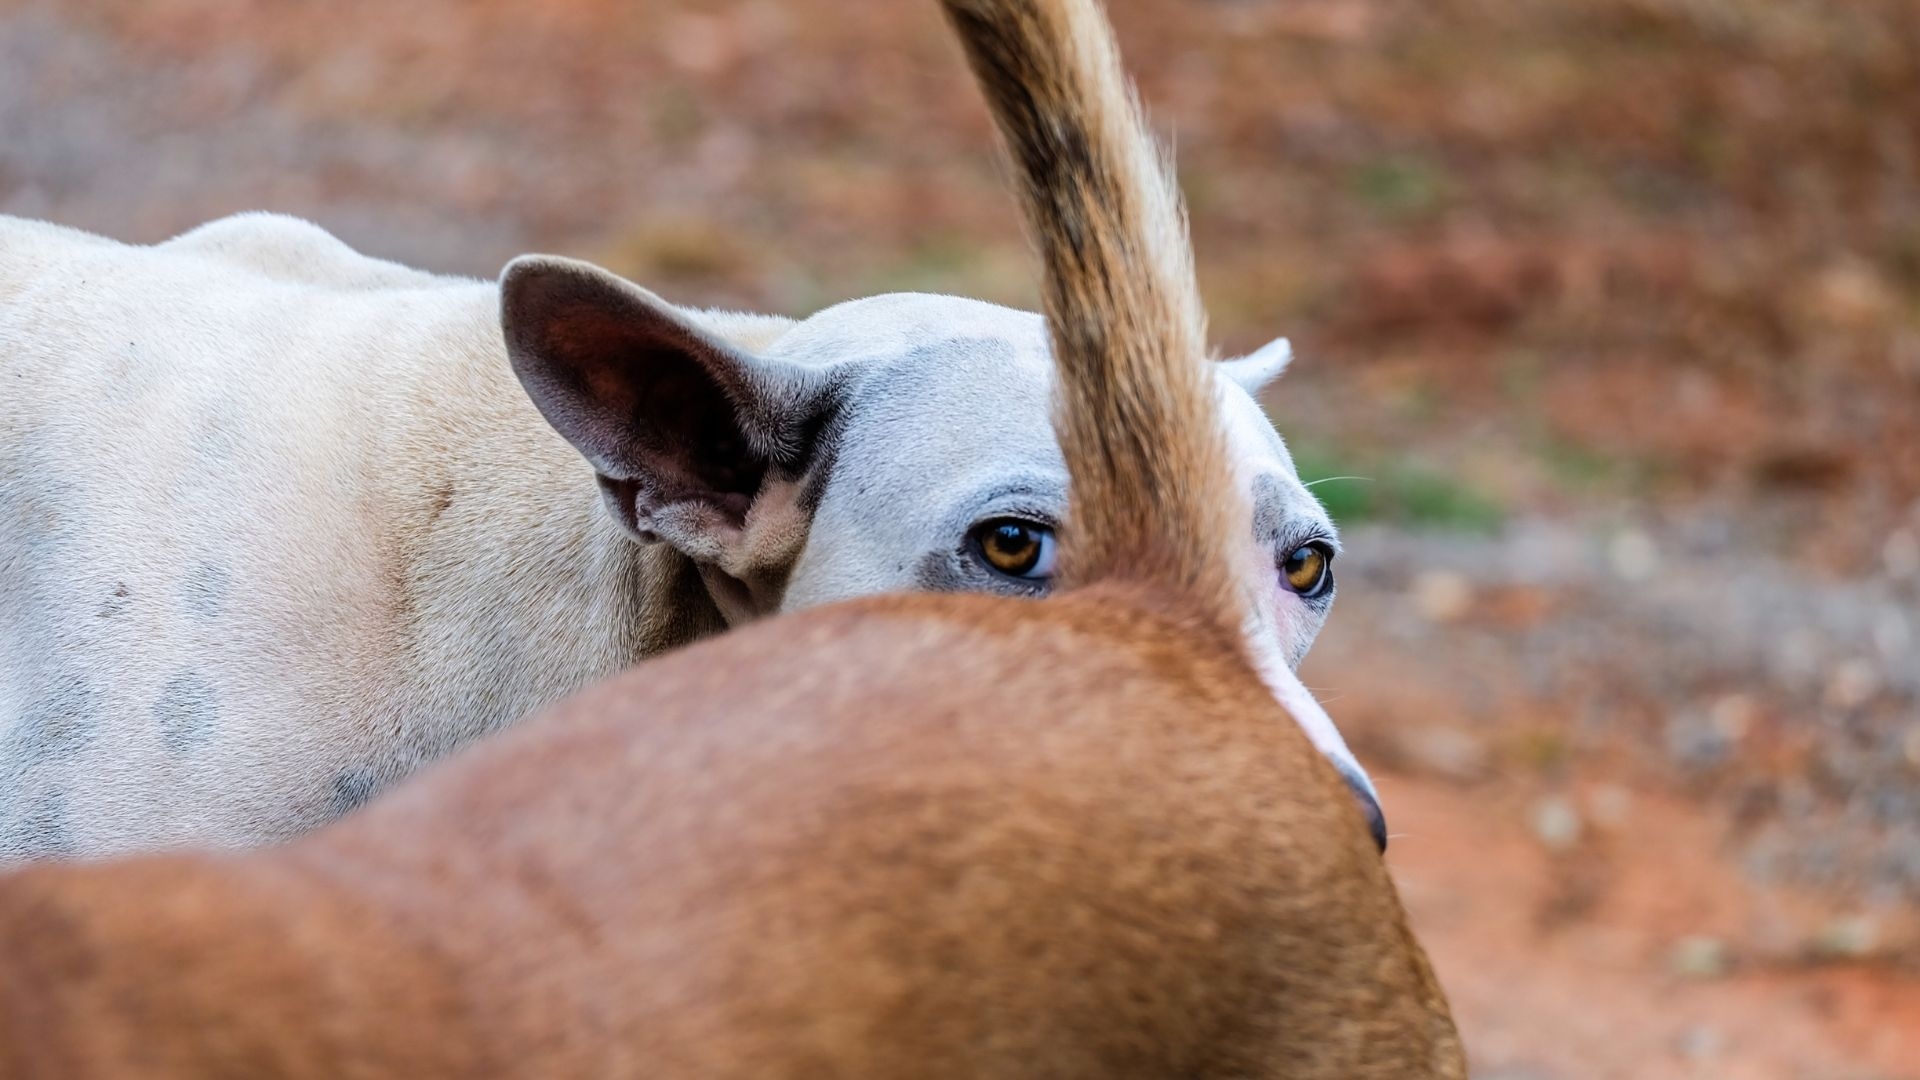 weird things dogs do such as sniffing another dog's butt